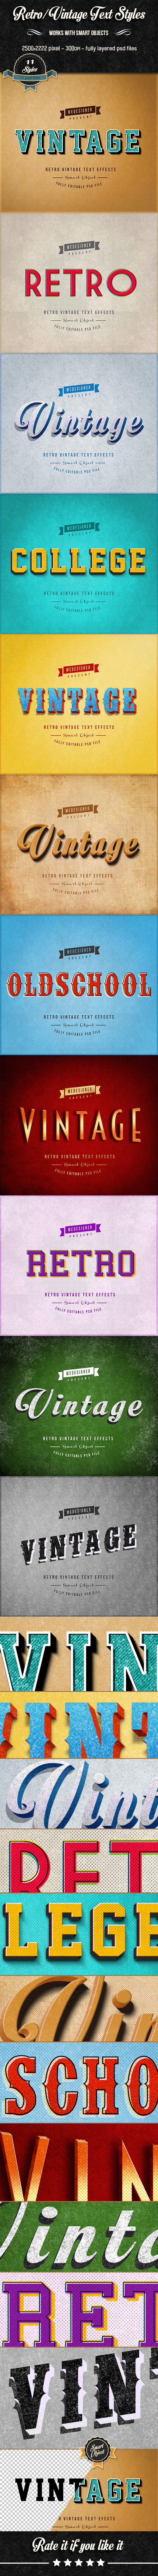 GraphicRiver Retro Vintage Text Effects V.1 9807189